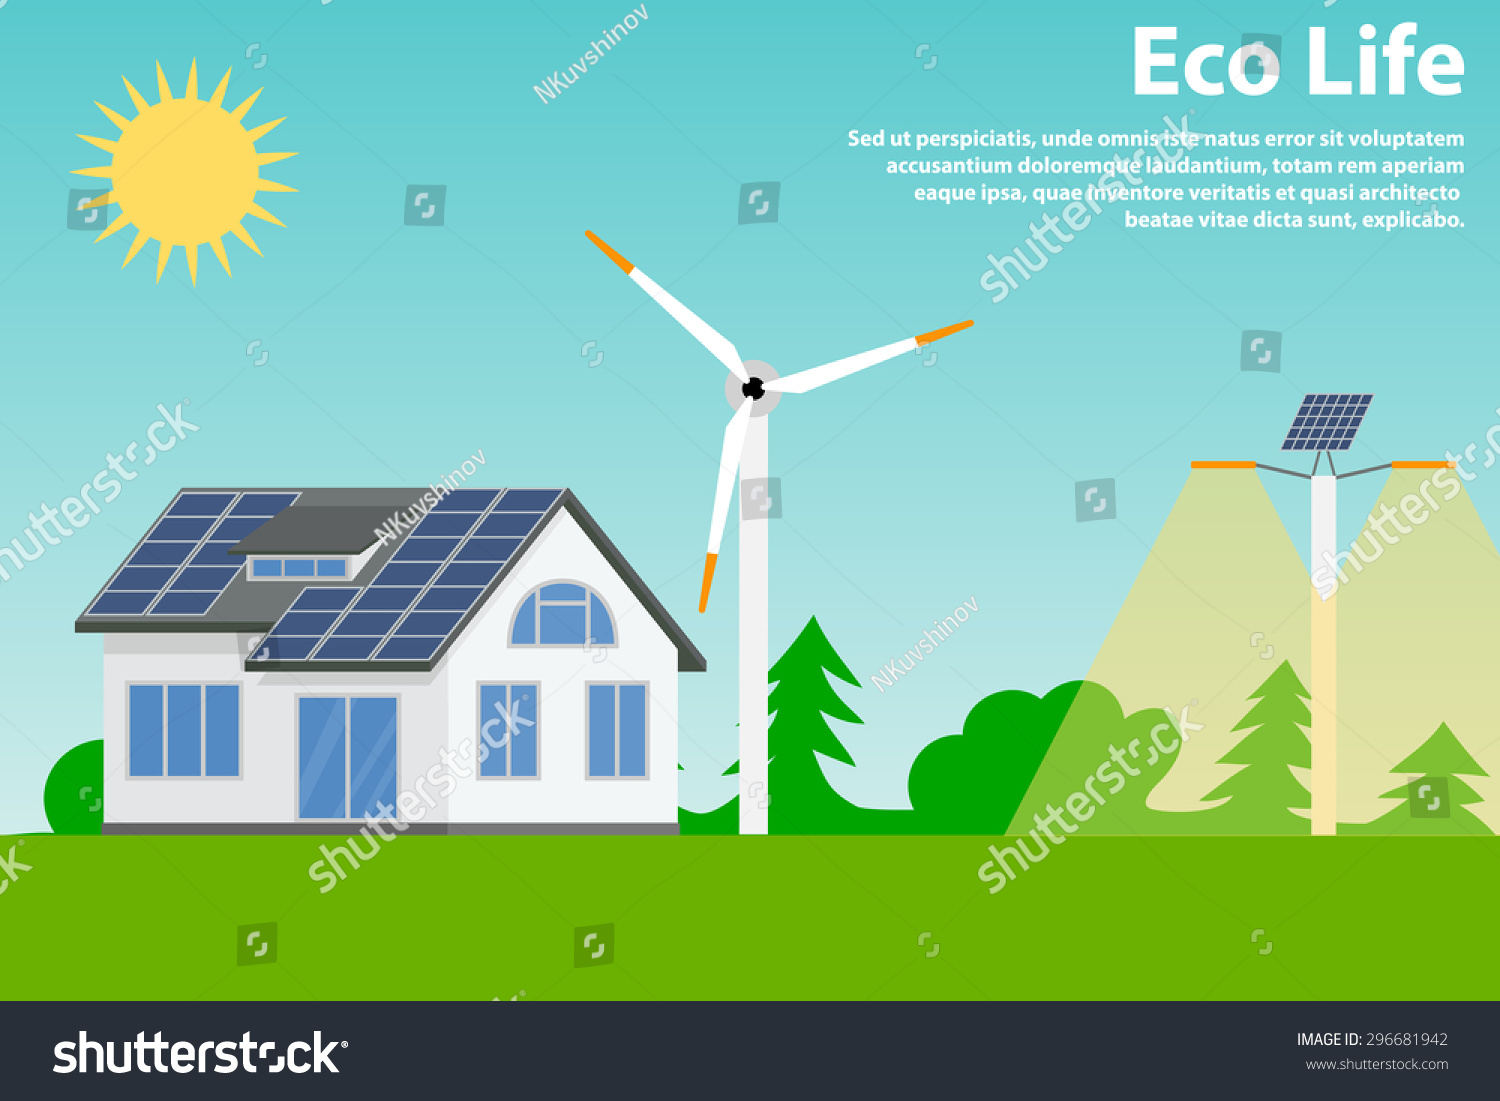 an analysis of the use of solar energy in the environment Iea-retd / business models for renewable energy in the energy contracting 36 415 swot analysis for renewable energy in the built environment 7.